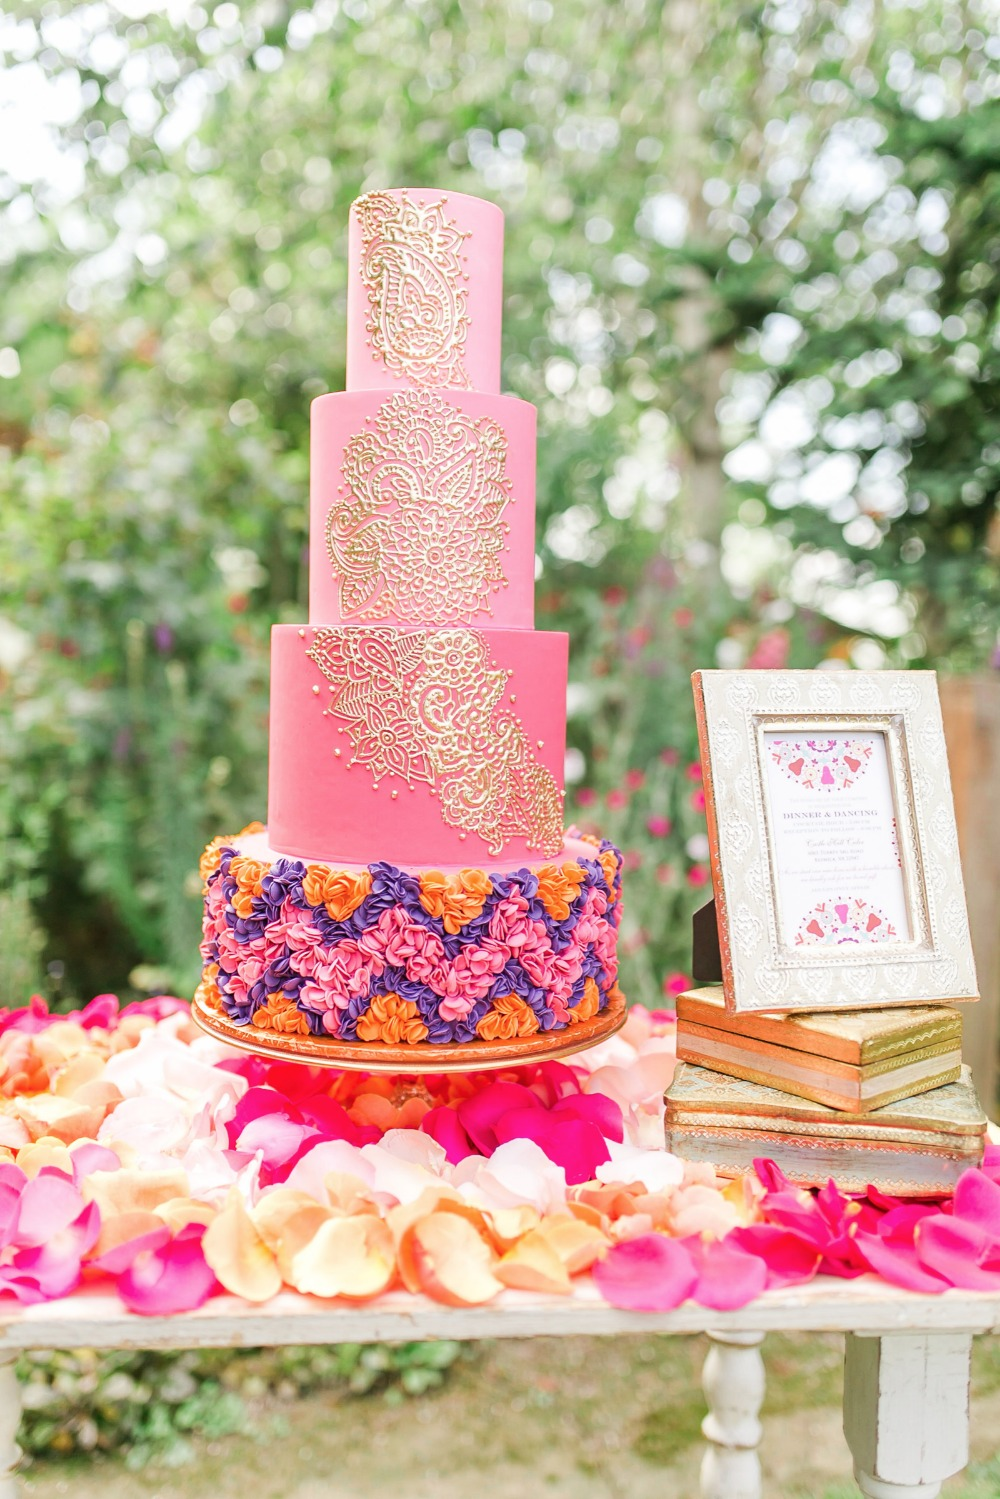 Grand four-tiered ombre fuchsia cake with intricate henna piping